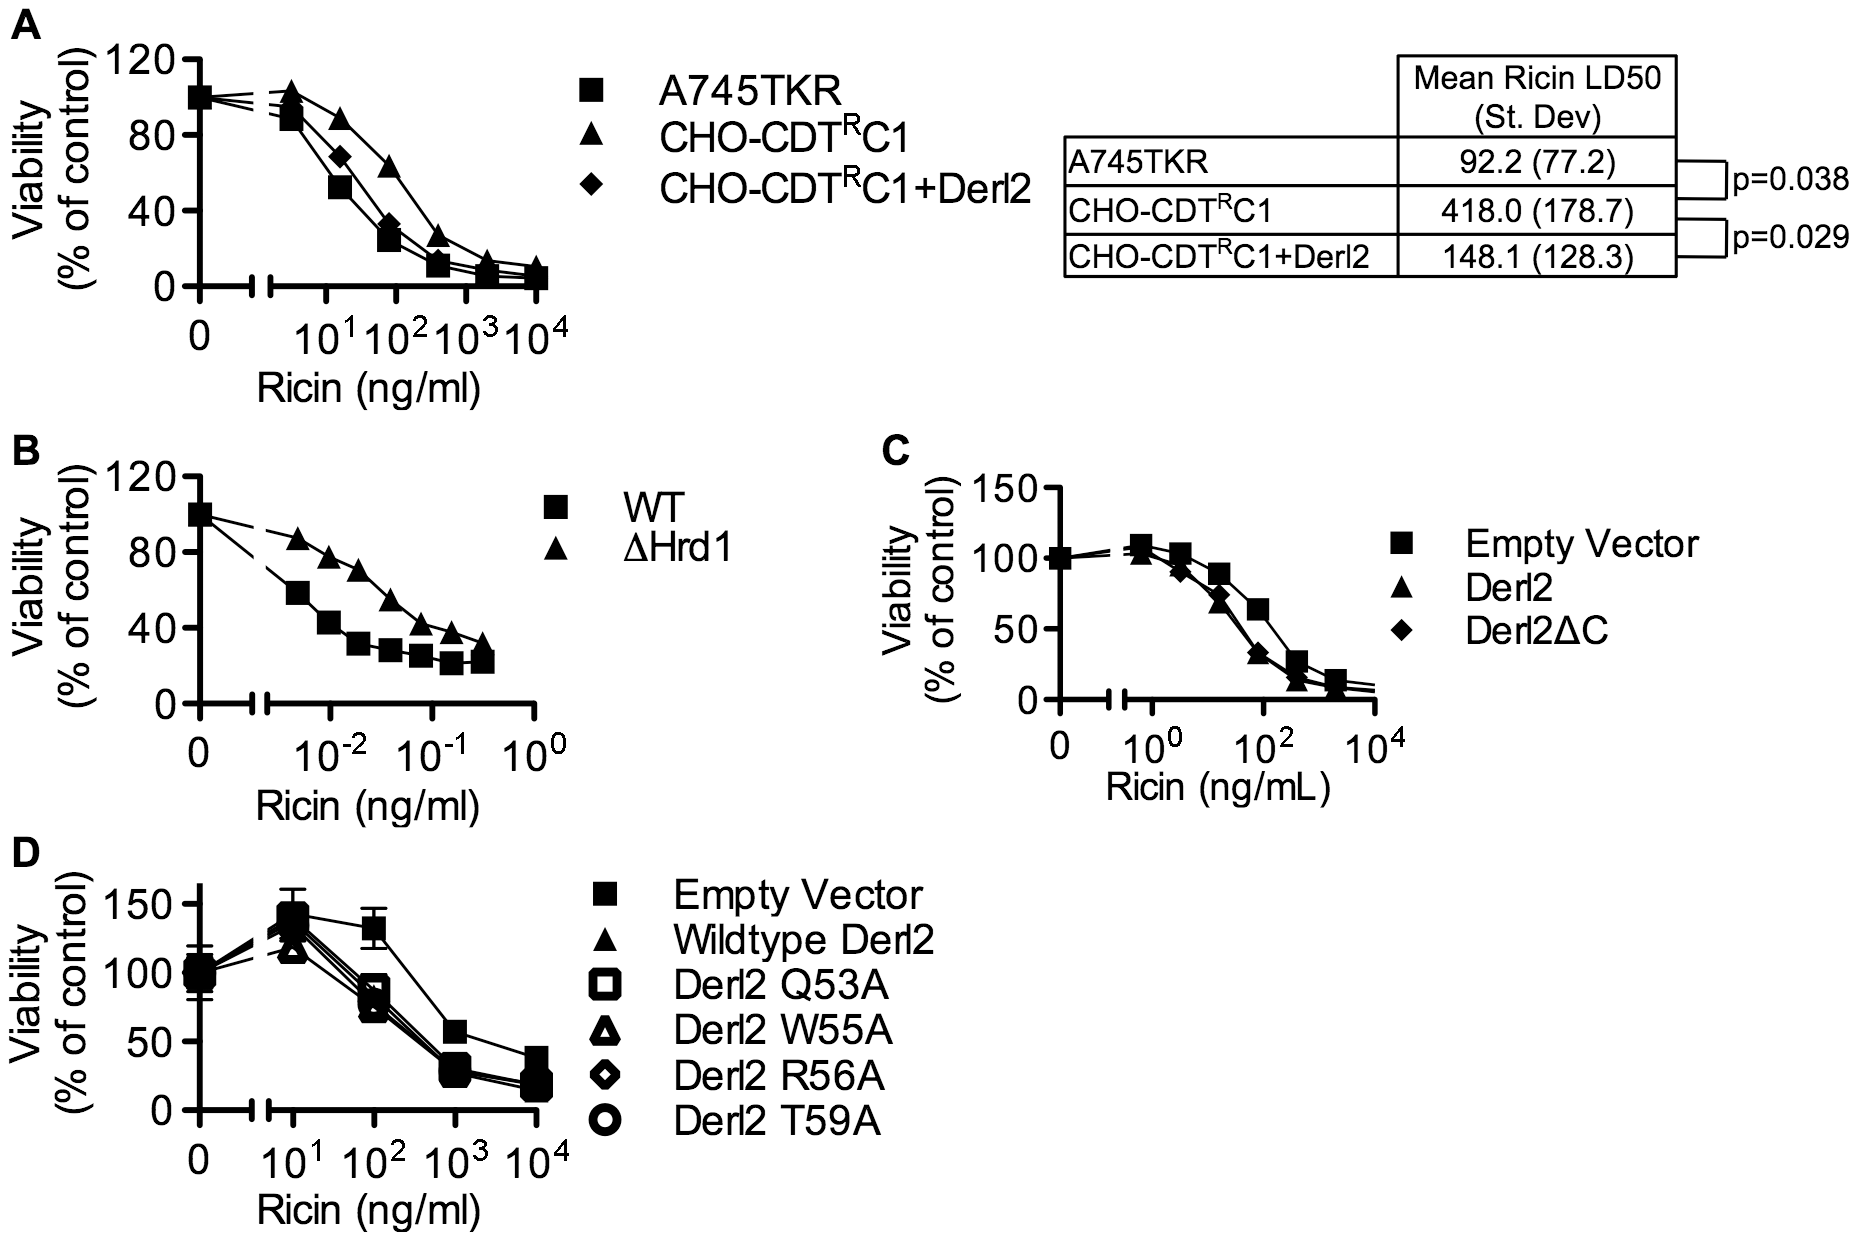 Derl2 and Hrd1 contribute to sensitivity to Ricin, independent of the Derl2 WR motif and the interaction of Derl2 with p97.